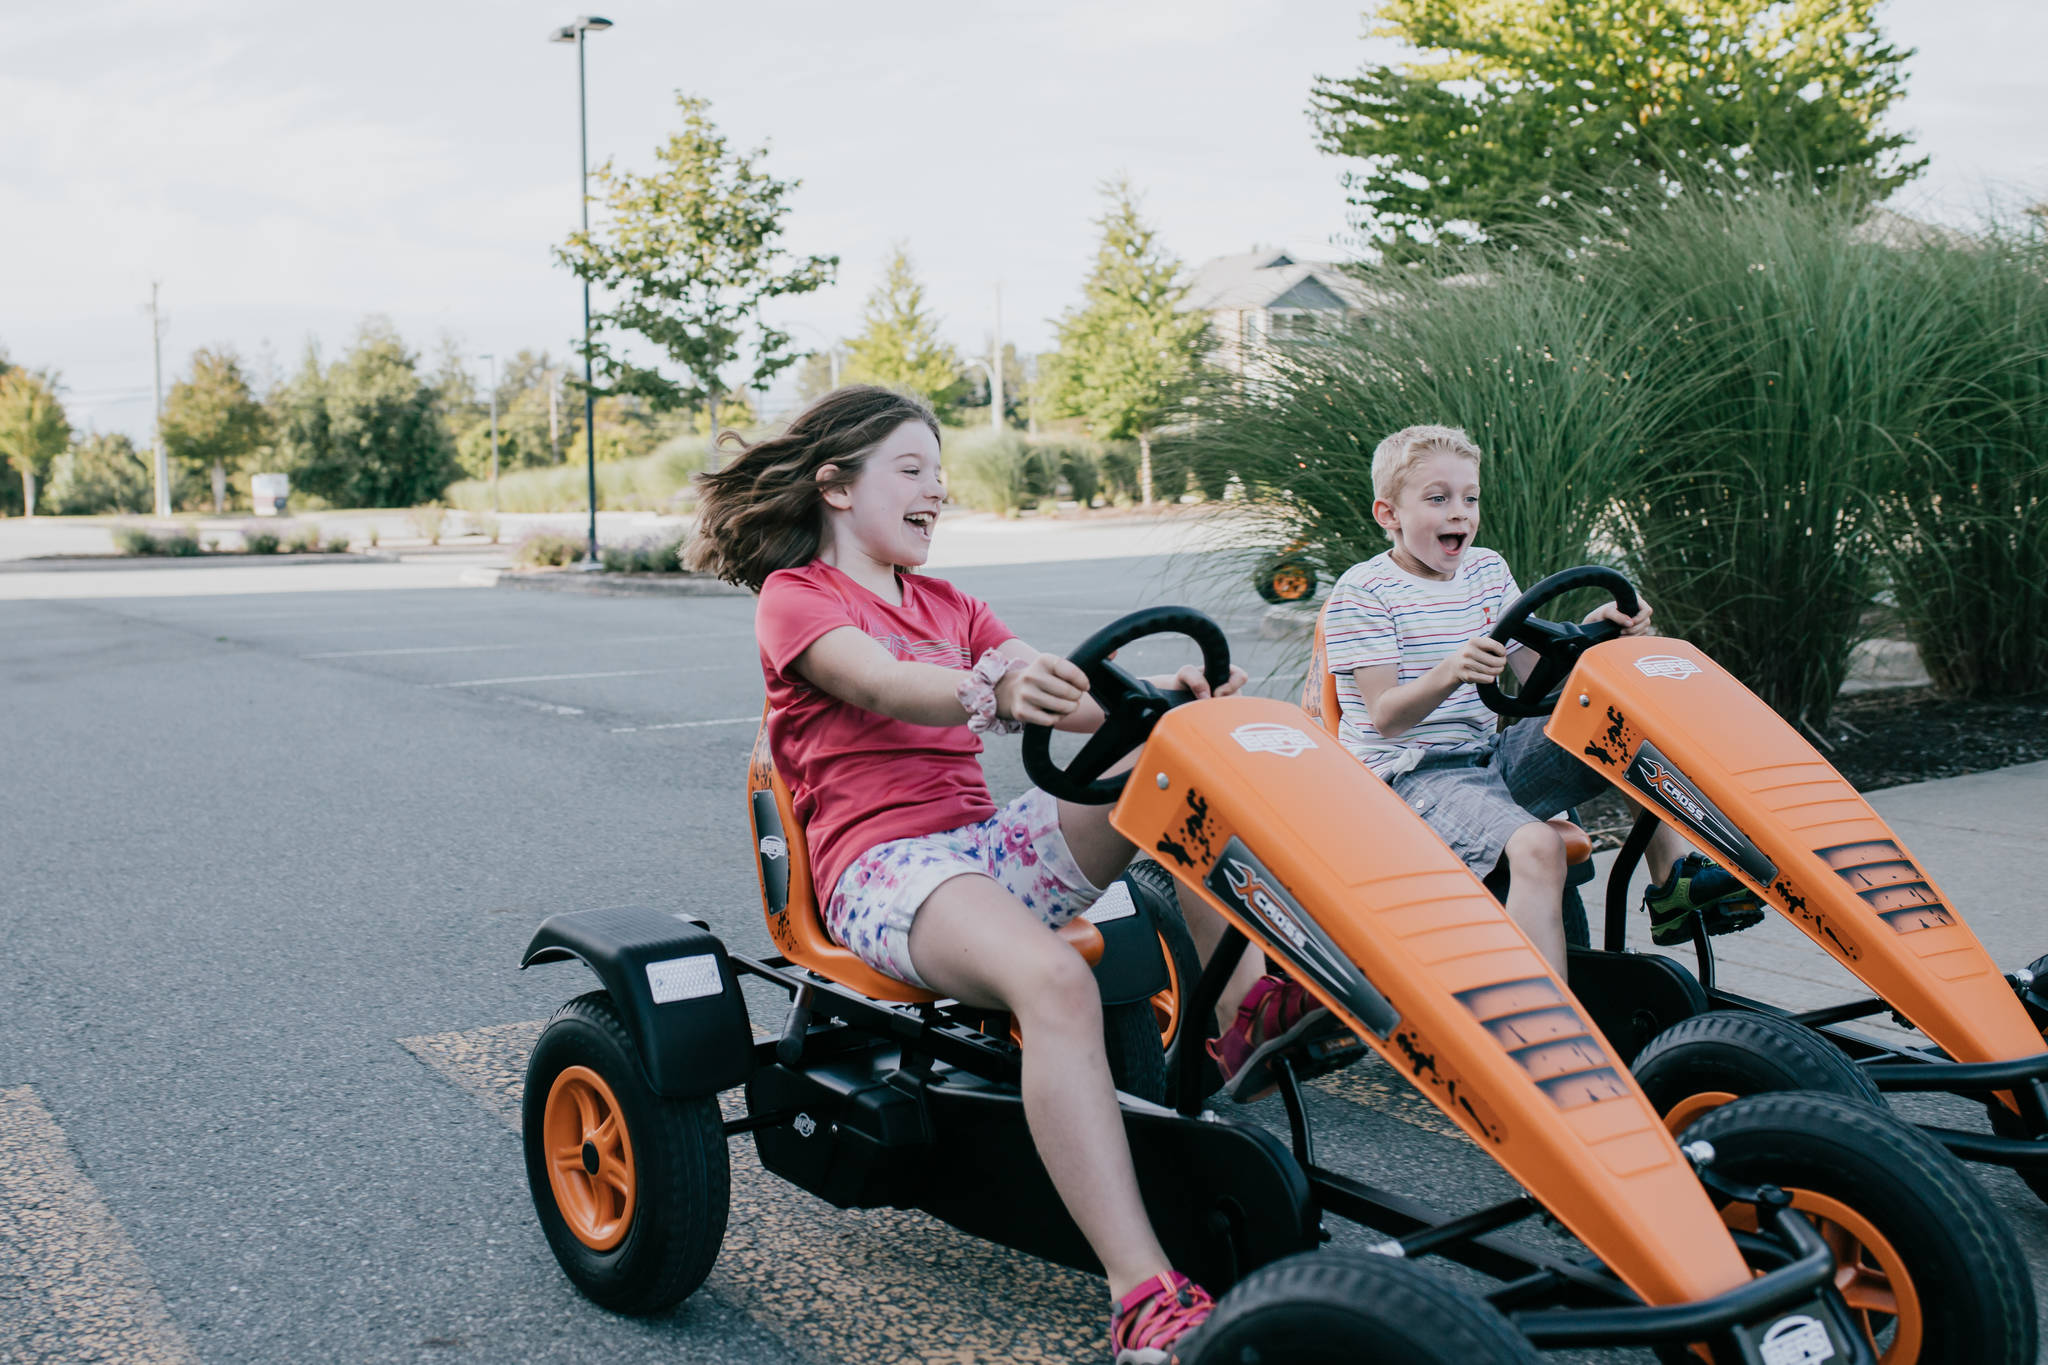 SouthRidge Fellowship is hosting a Mario Kart-inspired go-kart experience over three days in July. (SouthRidge Fellowship/Special to Langley Advance Times)